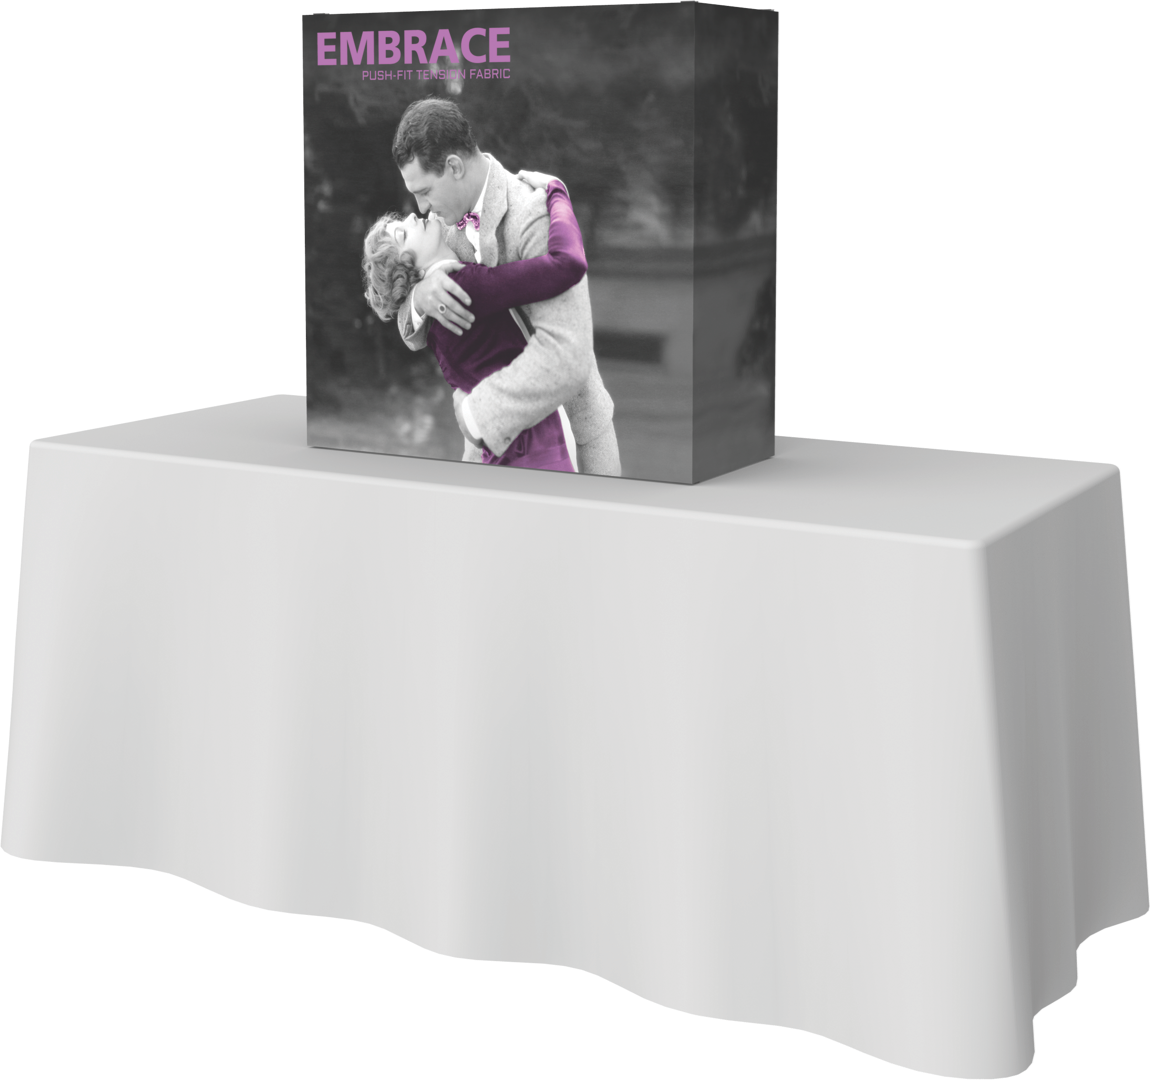 Embrace 1x1 front graphic with endcaps